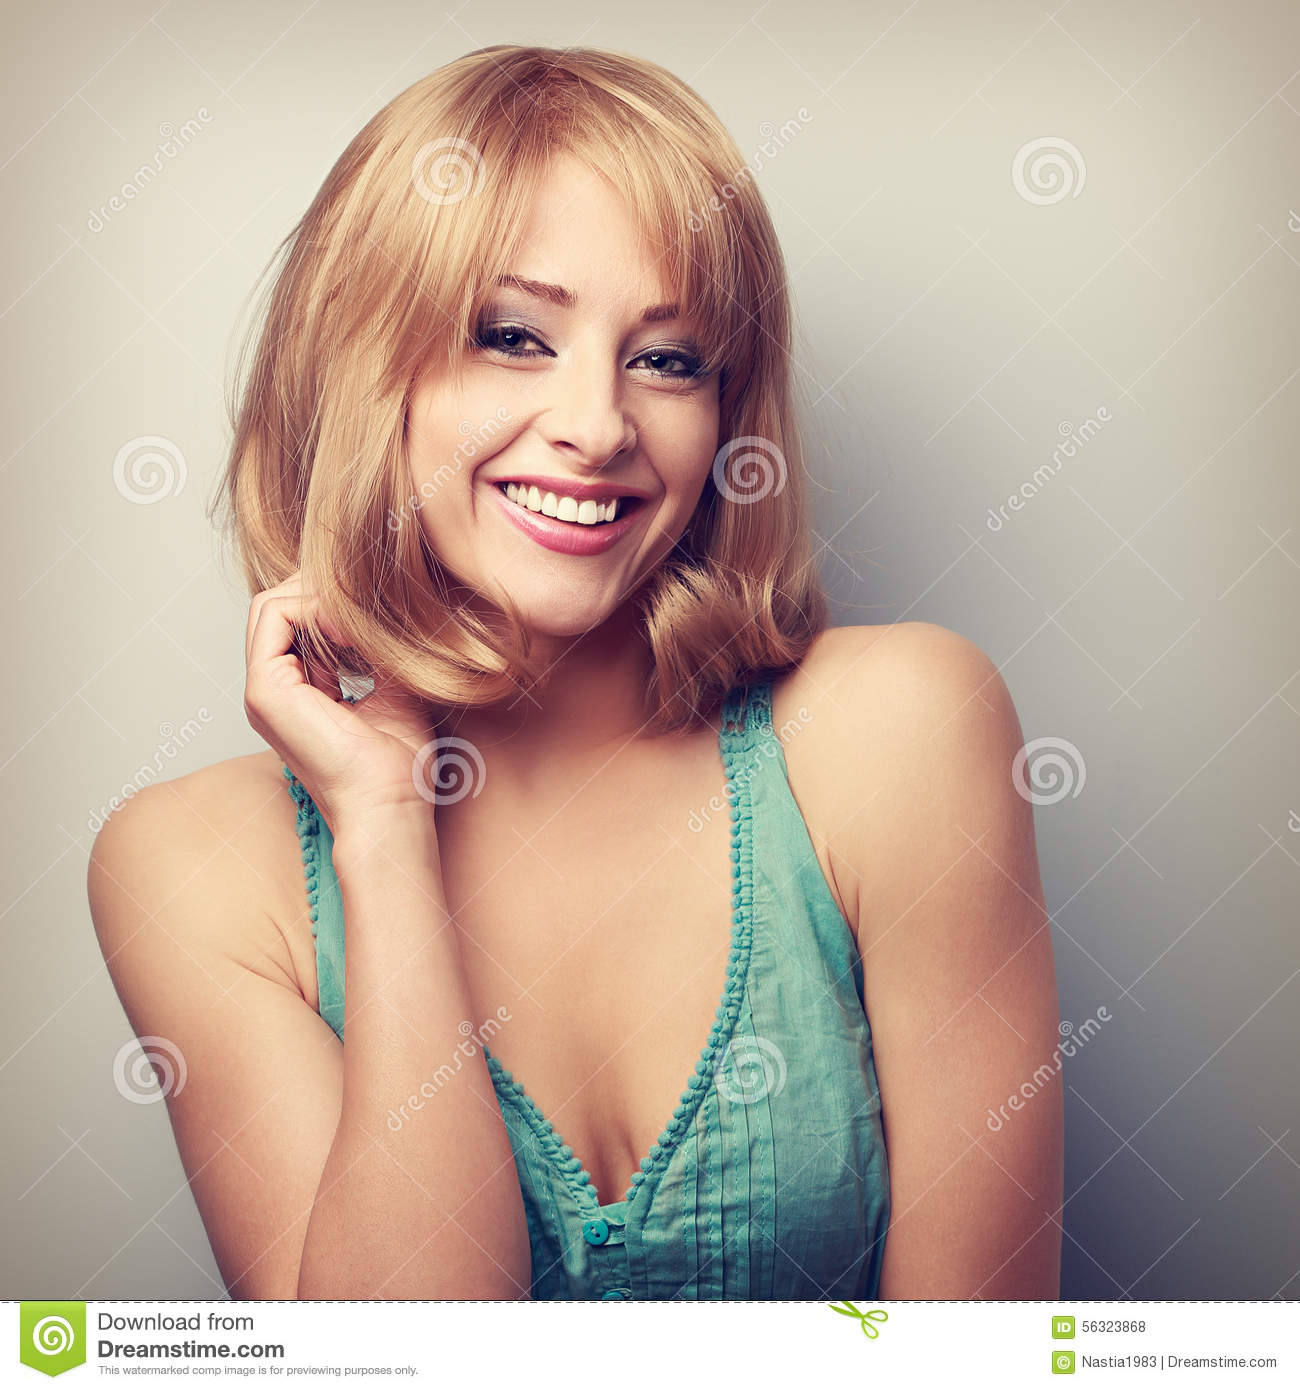 Happy laughing short hair blond woman. Bright makeup. Closeup to